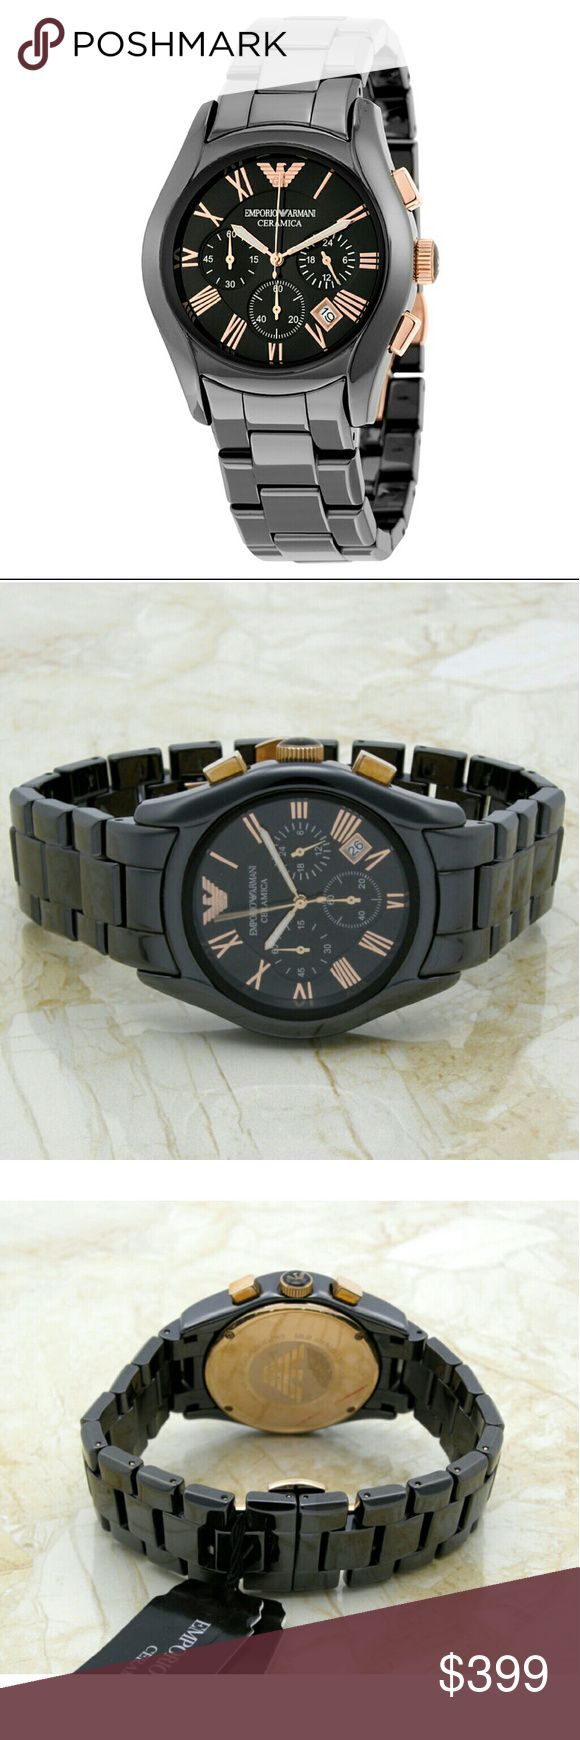 NWT Emporio Armani $599 Ceramica black watch NWT Emporio Armani $599 Ceramica Chronograph Men's Black Stainless Steel Watch  PRICE  $399.00 . AUTHENTIC WATCH  . AUTHENTIC BOX  . AUTHENTIC MANUAL  SHIPPING  PLEASE ALLOW FEW BUSINESS DAYS FOR ME TO SHIPPED IT OFF.I HAVE TO GET IT FROM MY WAREHOUSE.  THANK YOU FOR YOUR UNDERSTANDING Emporio Armani  Accessories Watches